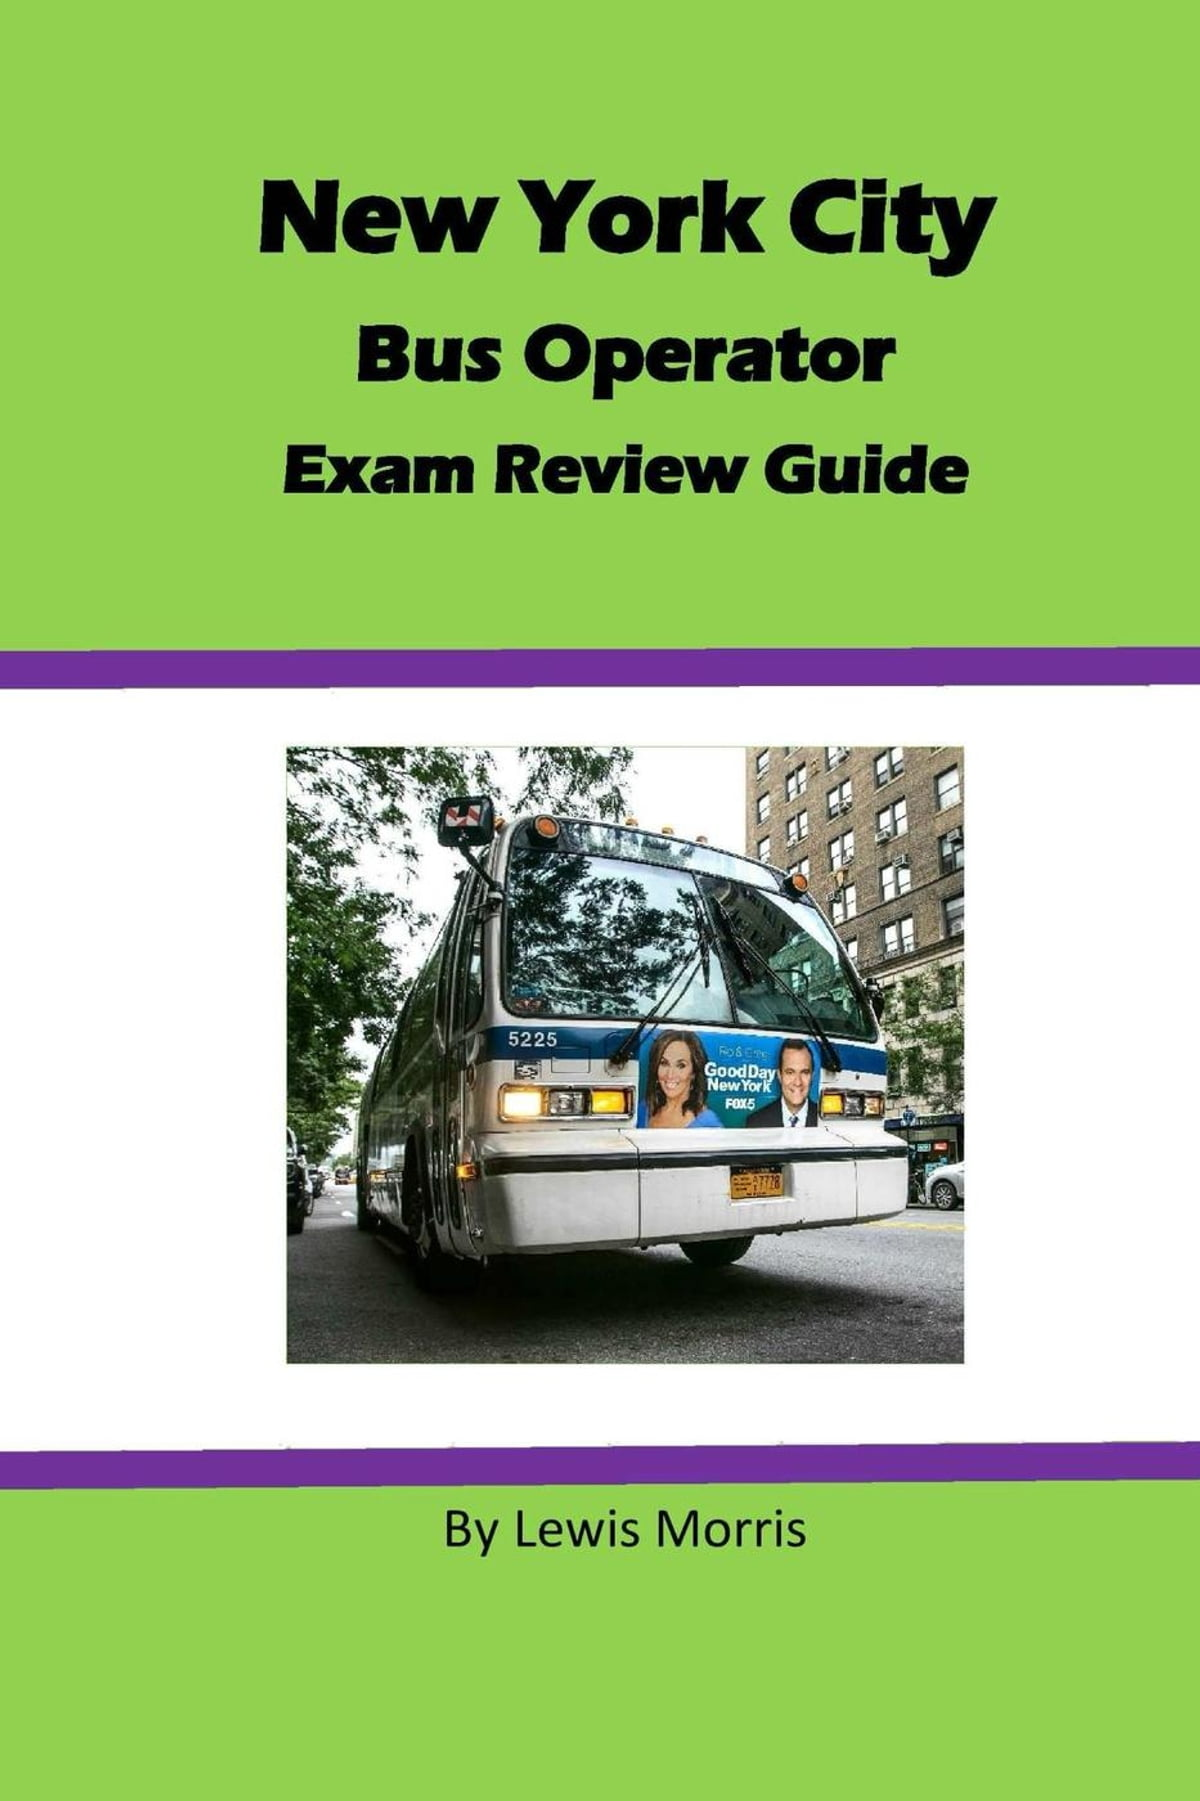 New York City Bus Operator Exam Review Guide eBook by Lewis Morris -  9781540113108 | Rakuten Kobo